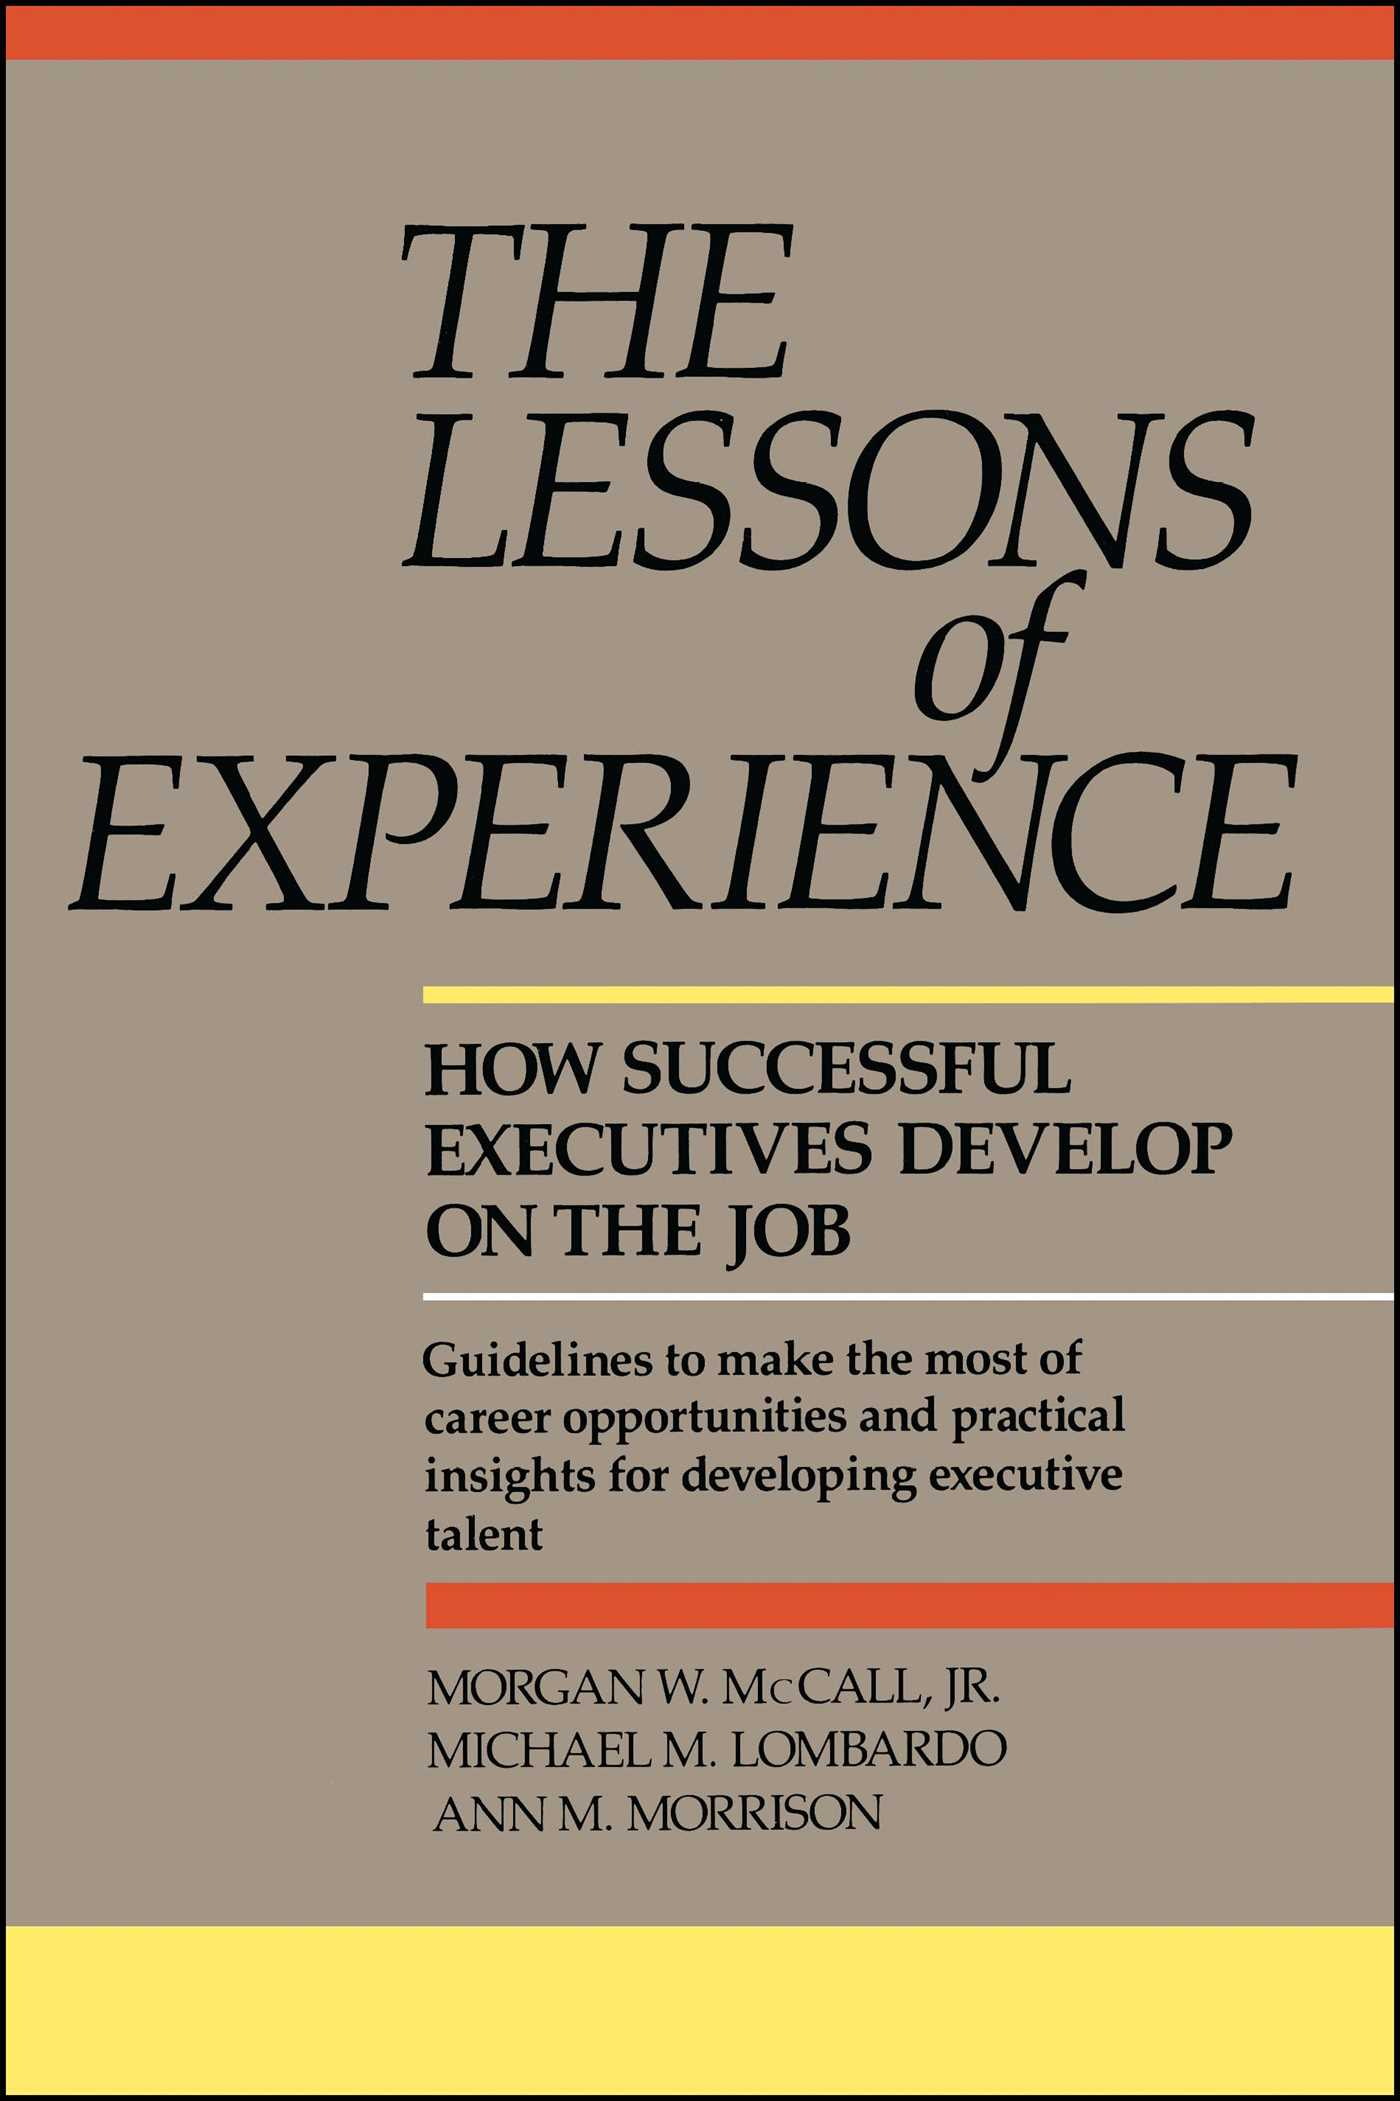 Lessons of experience 9780669180954 hr